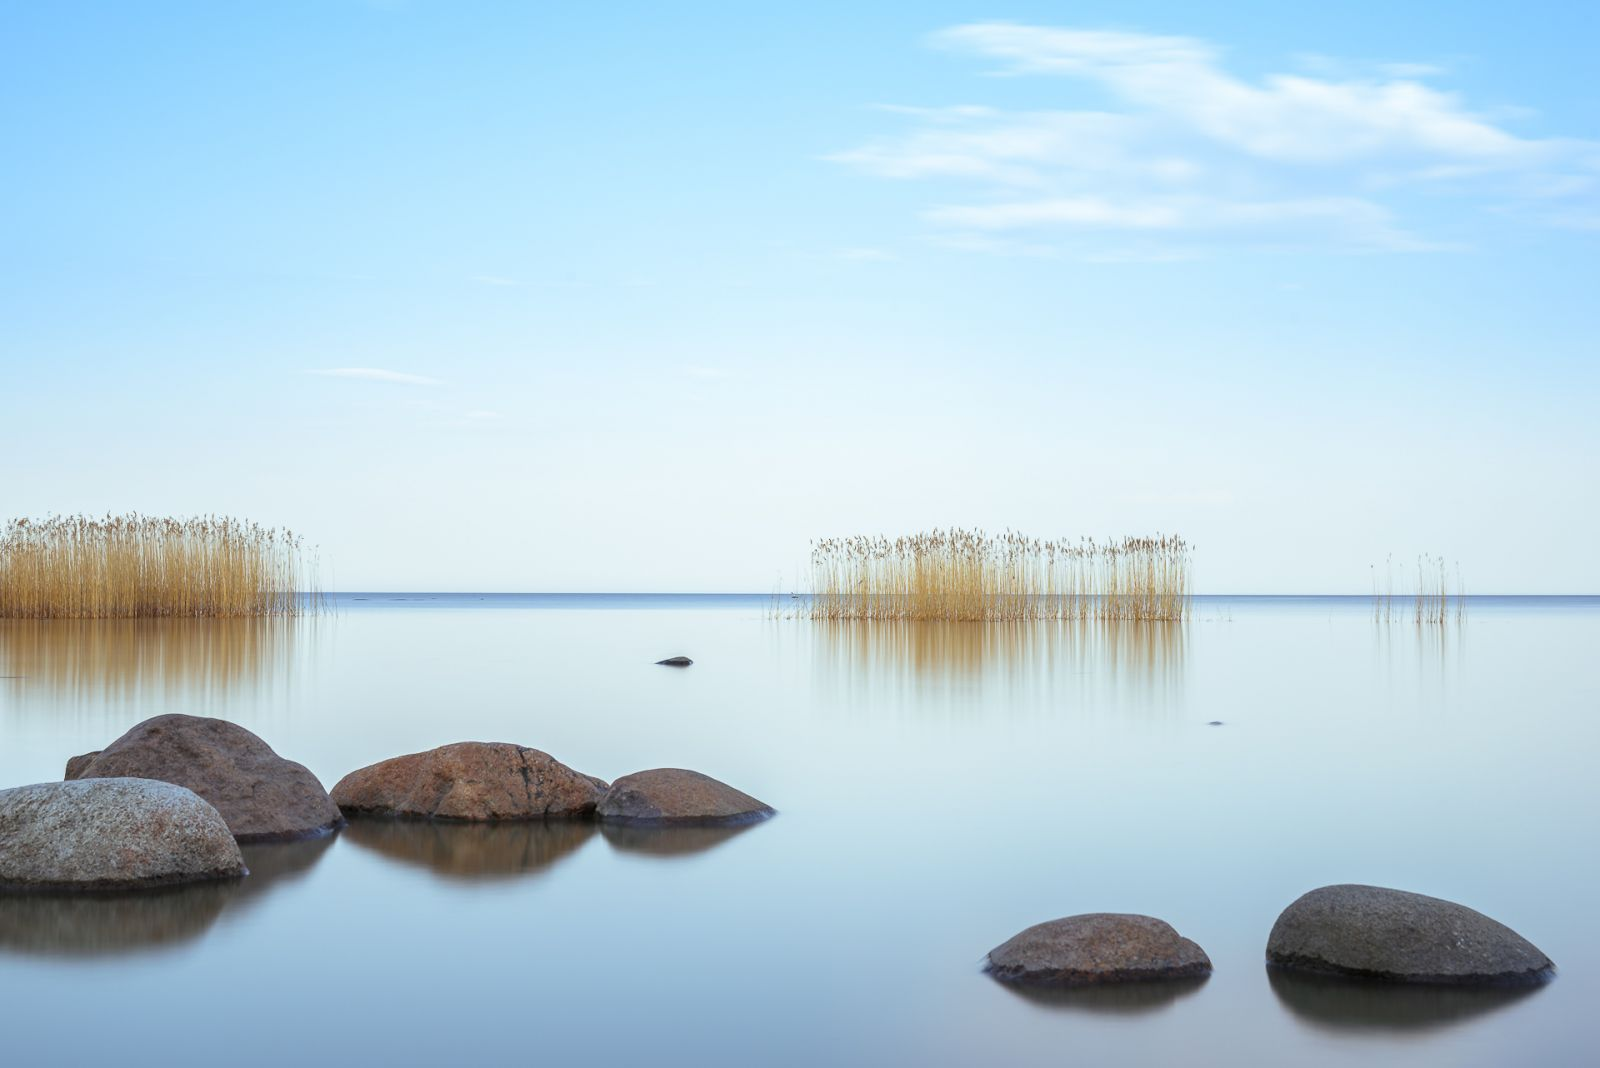 Evening on Ladoga, © Alexander Rybin, Landscape Nomination, Most Beautiful Country Photo Contest